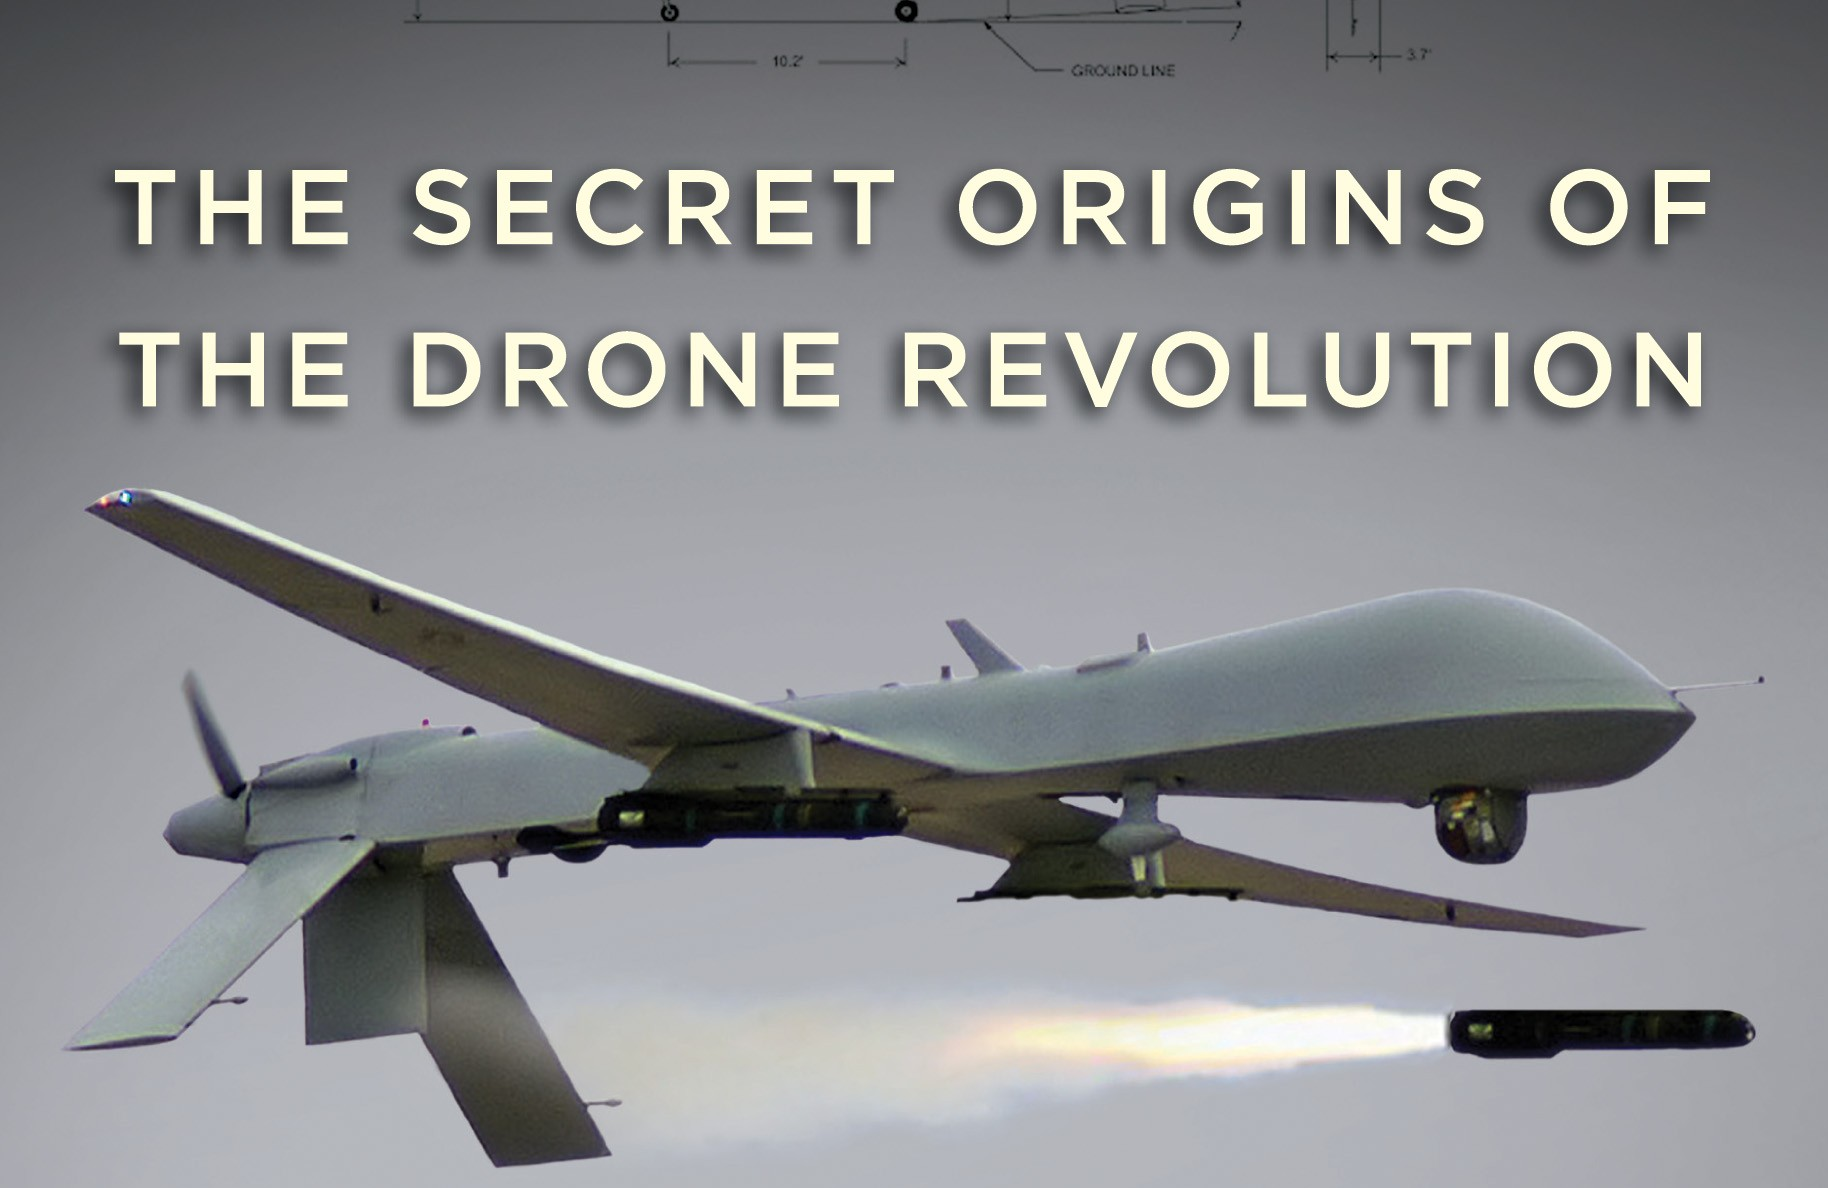 Interview: The Drone That Started It All – Center for the Study of